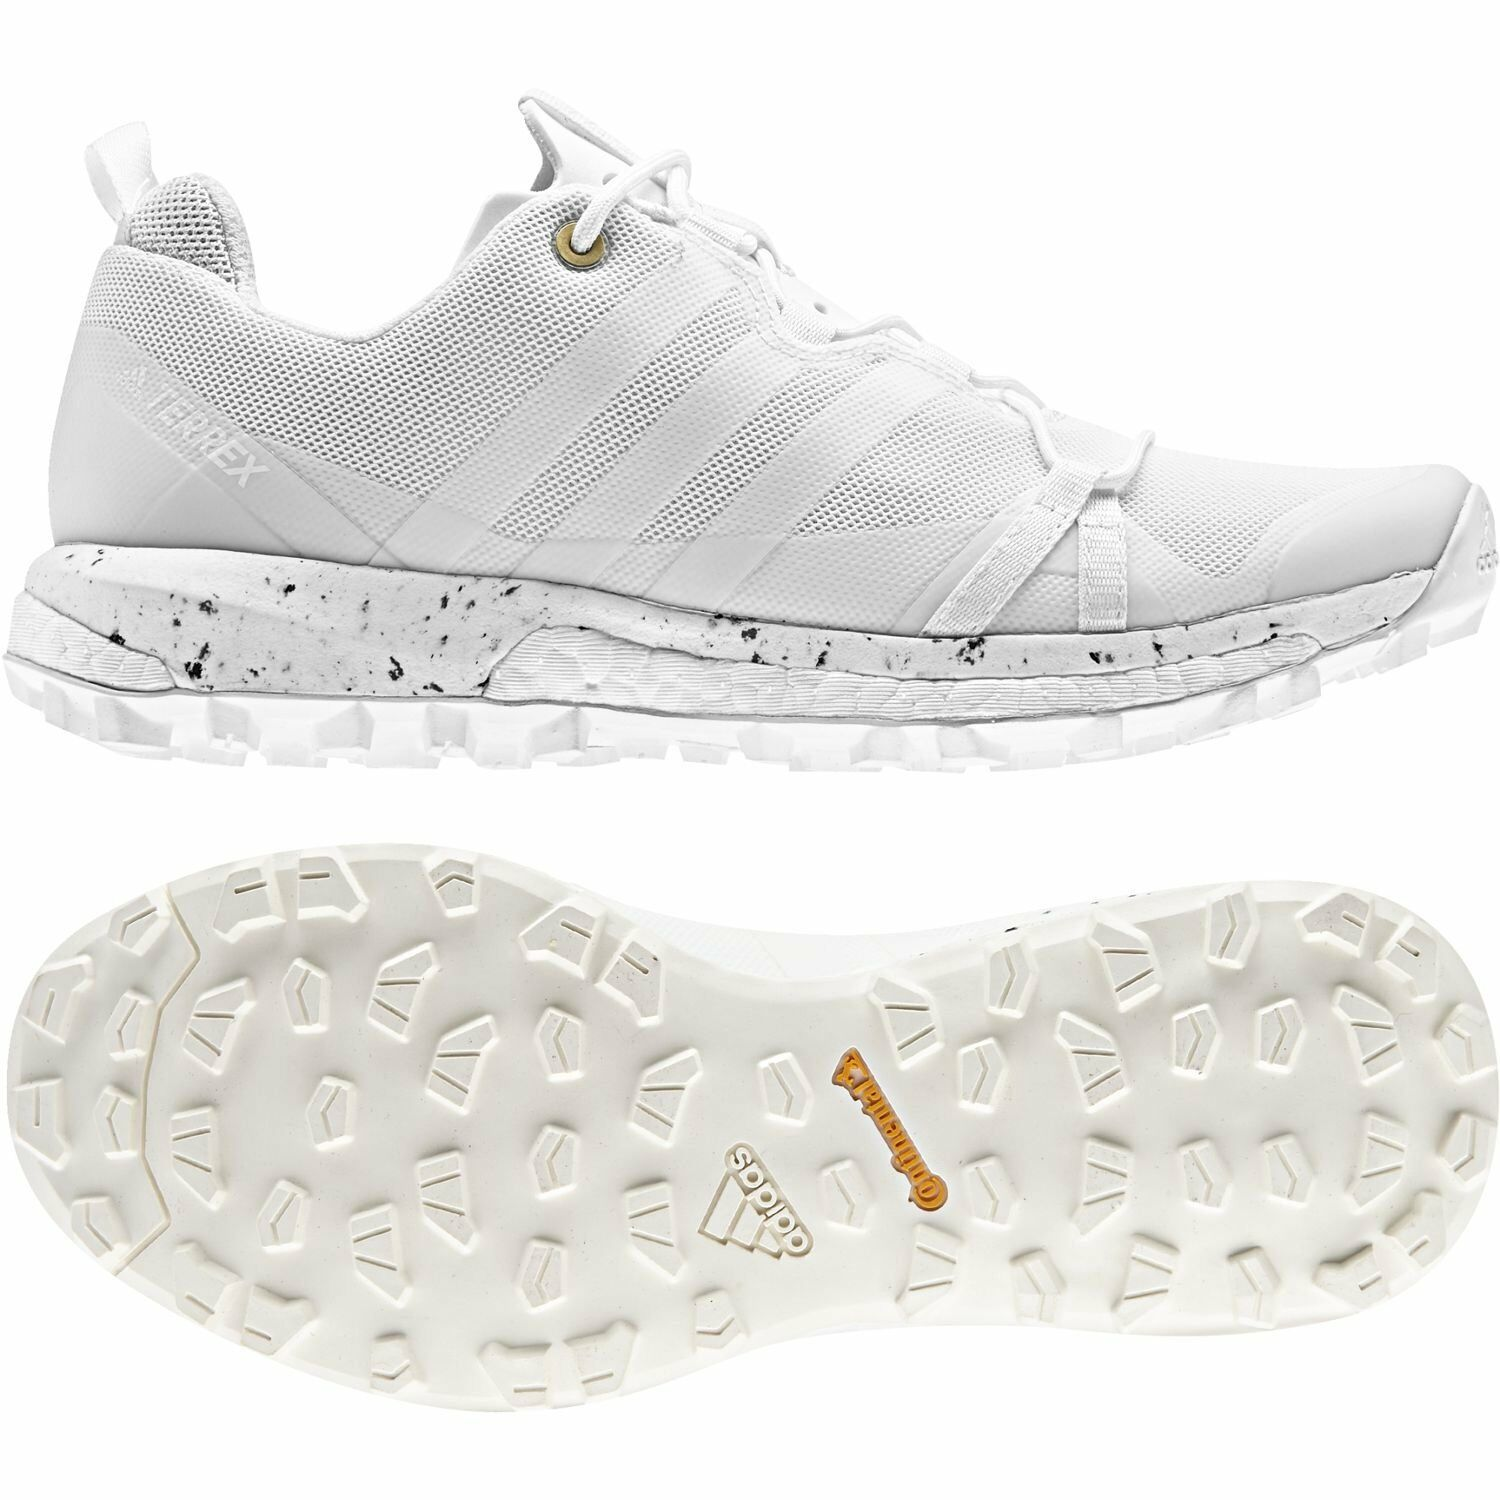 7c0fdefac9 adidas Terrex Agravic Boost Hiking Trail Women's Shoes Size US 9 White  Cq1734